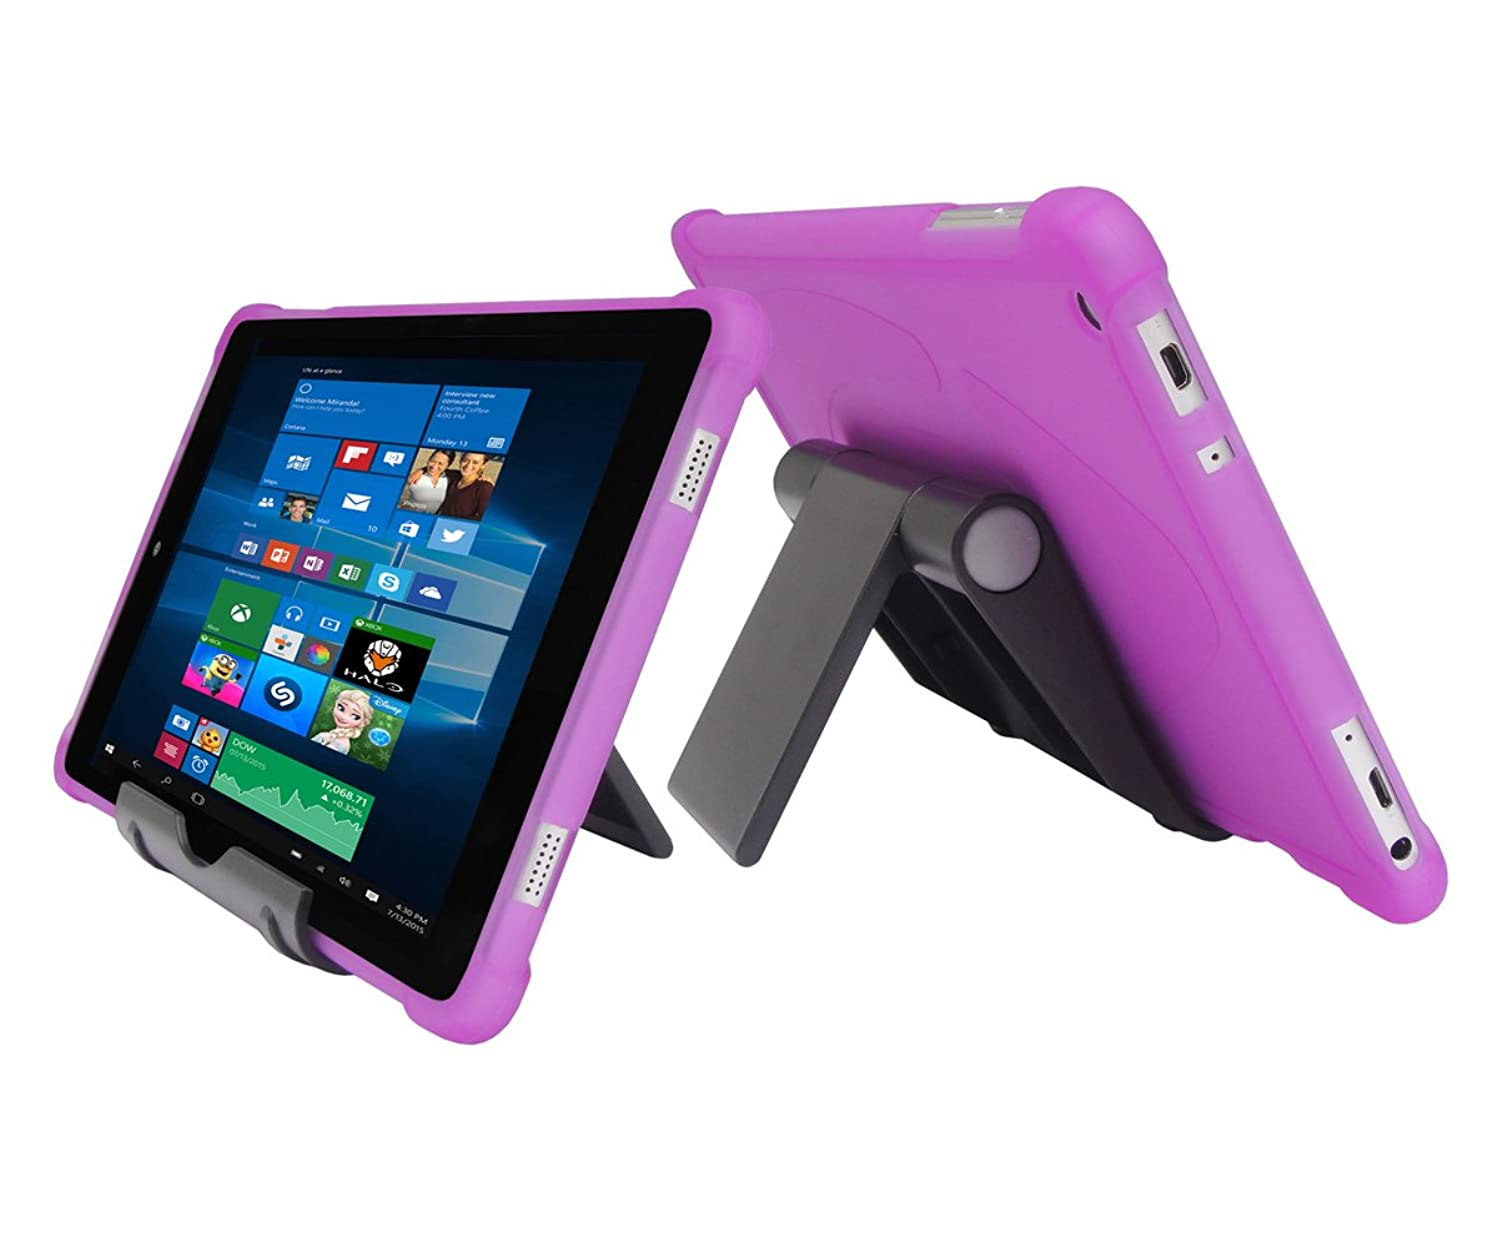 iShoppingdeals Protecive TPU Case + Adjustable Stand for Nuvision 8